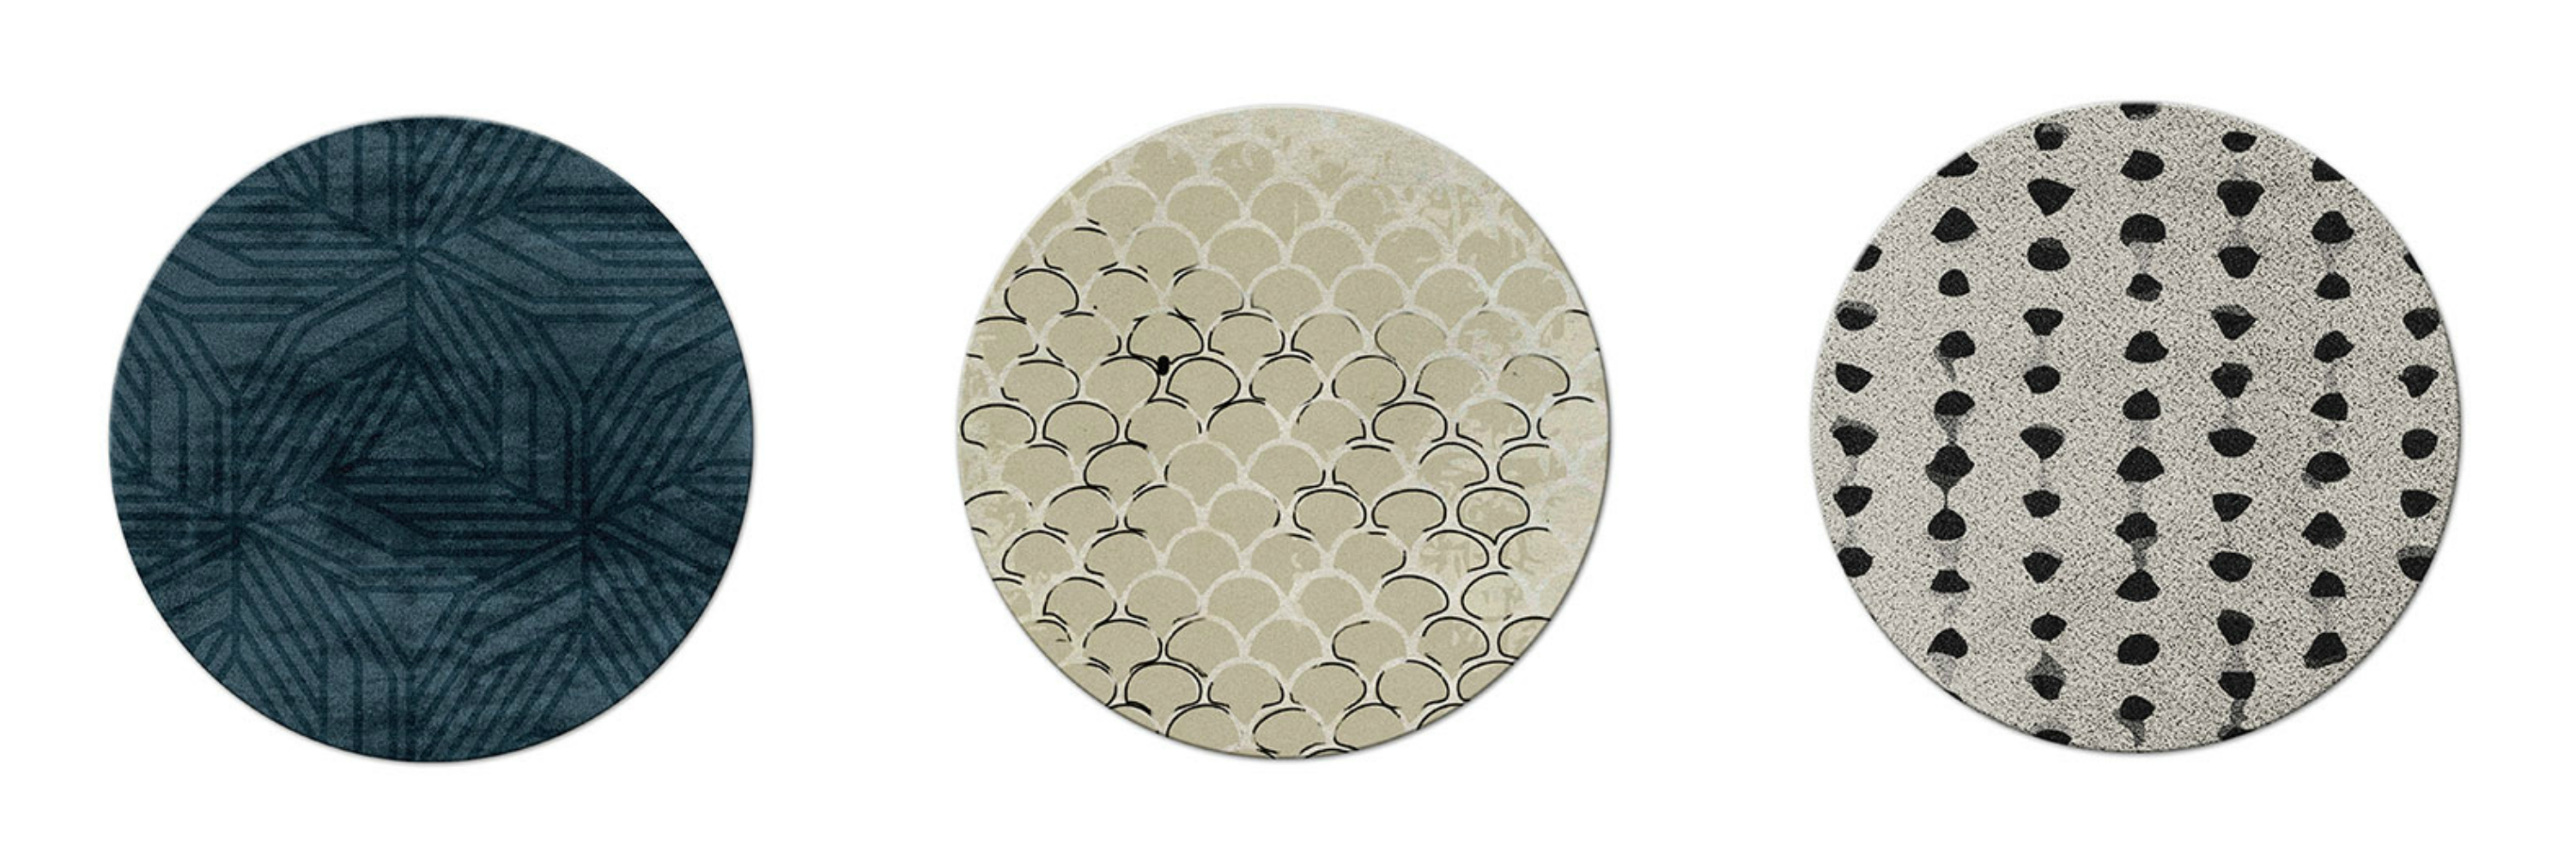 round rugs Round rugs for your home decor minigaleria